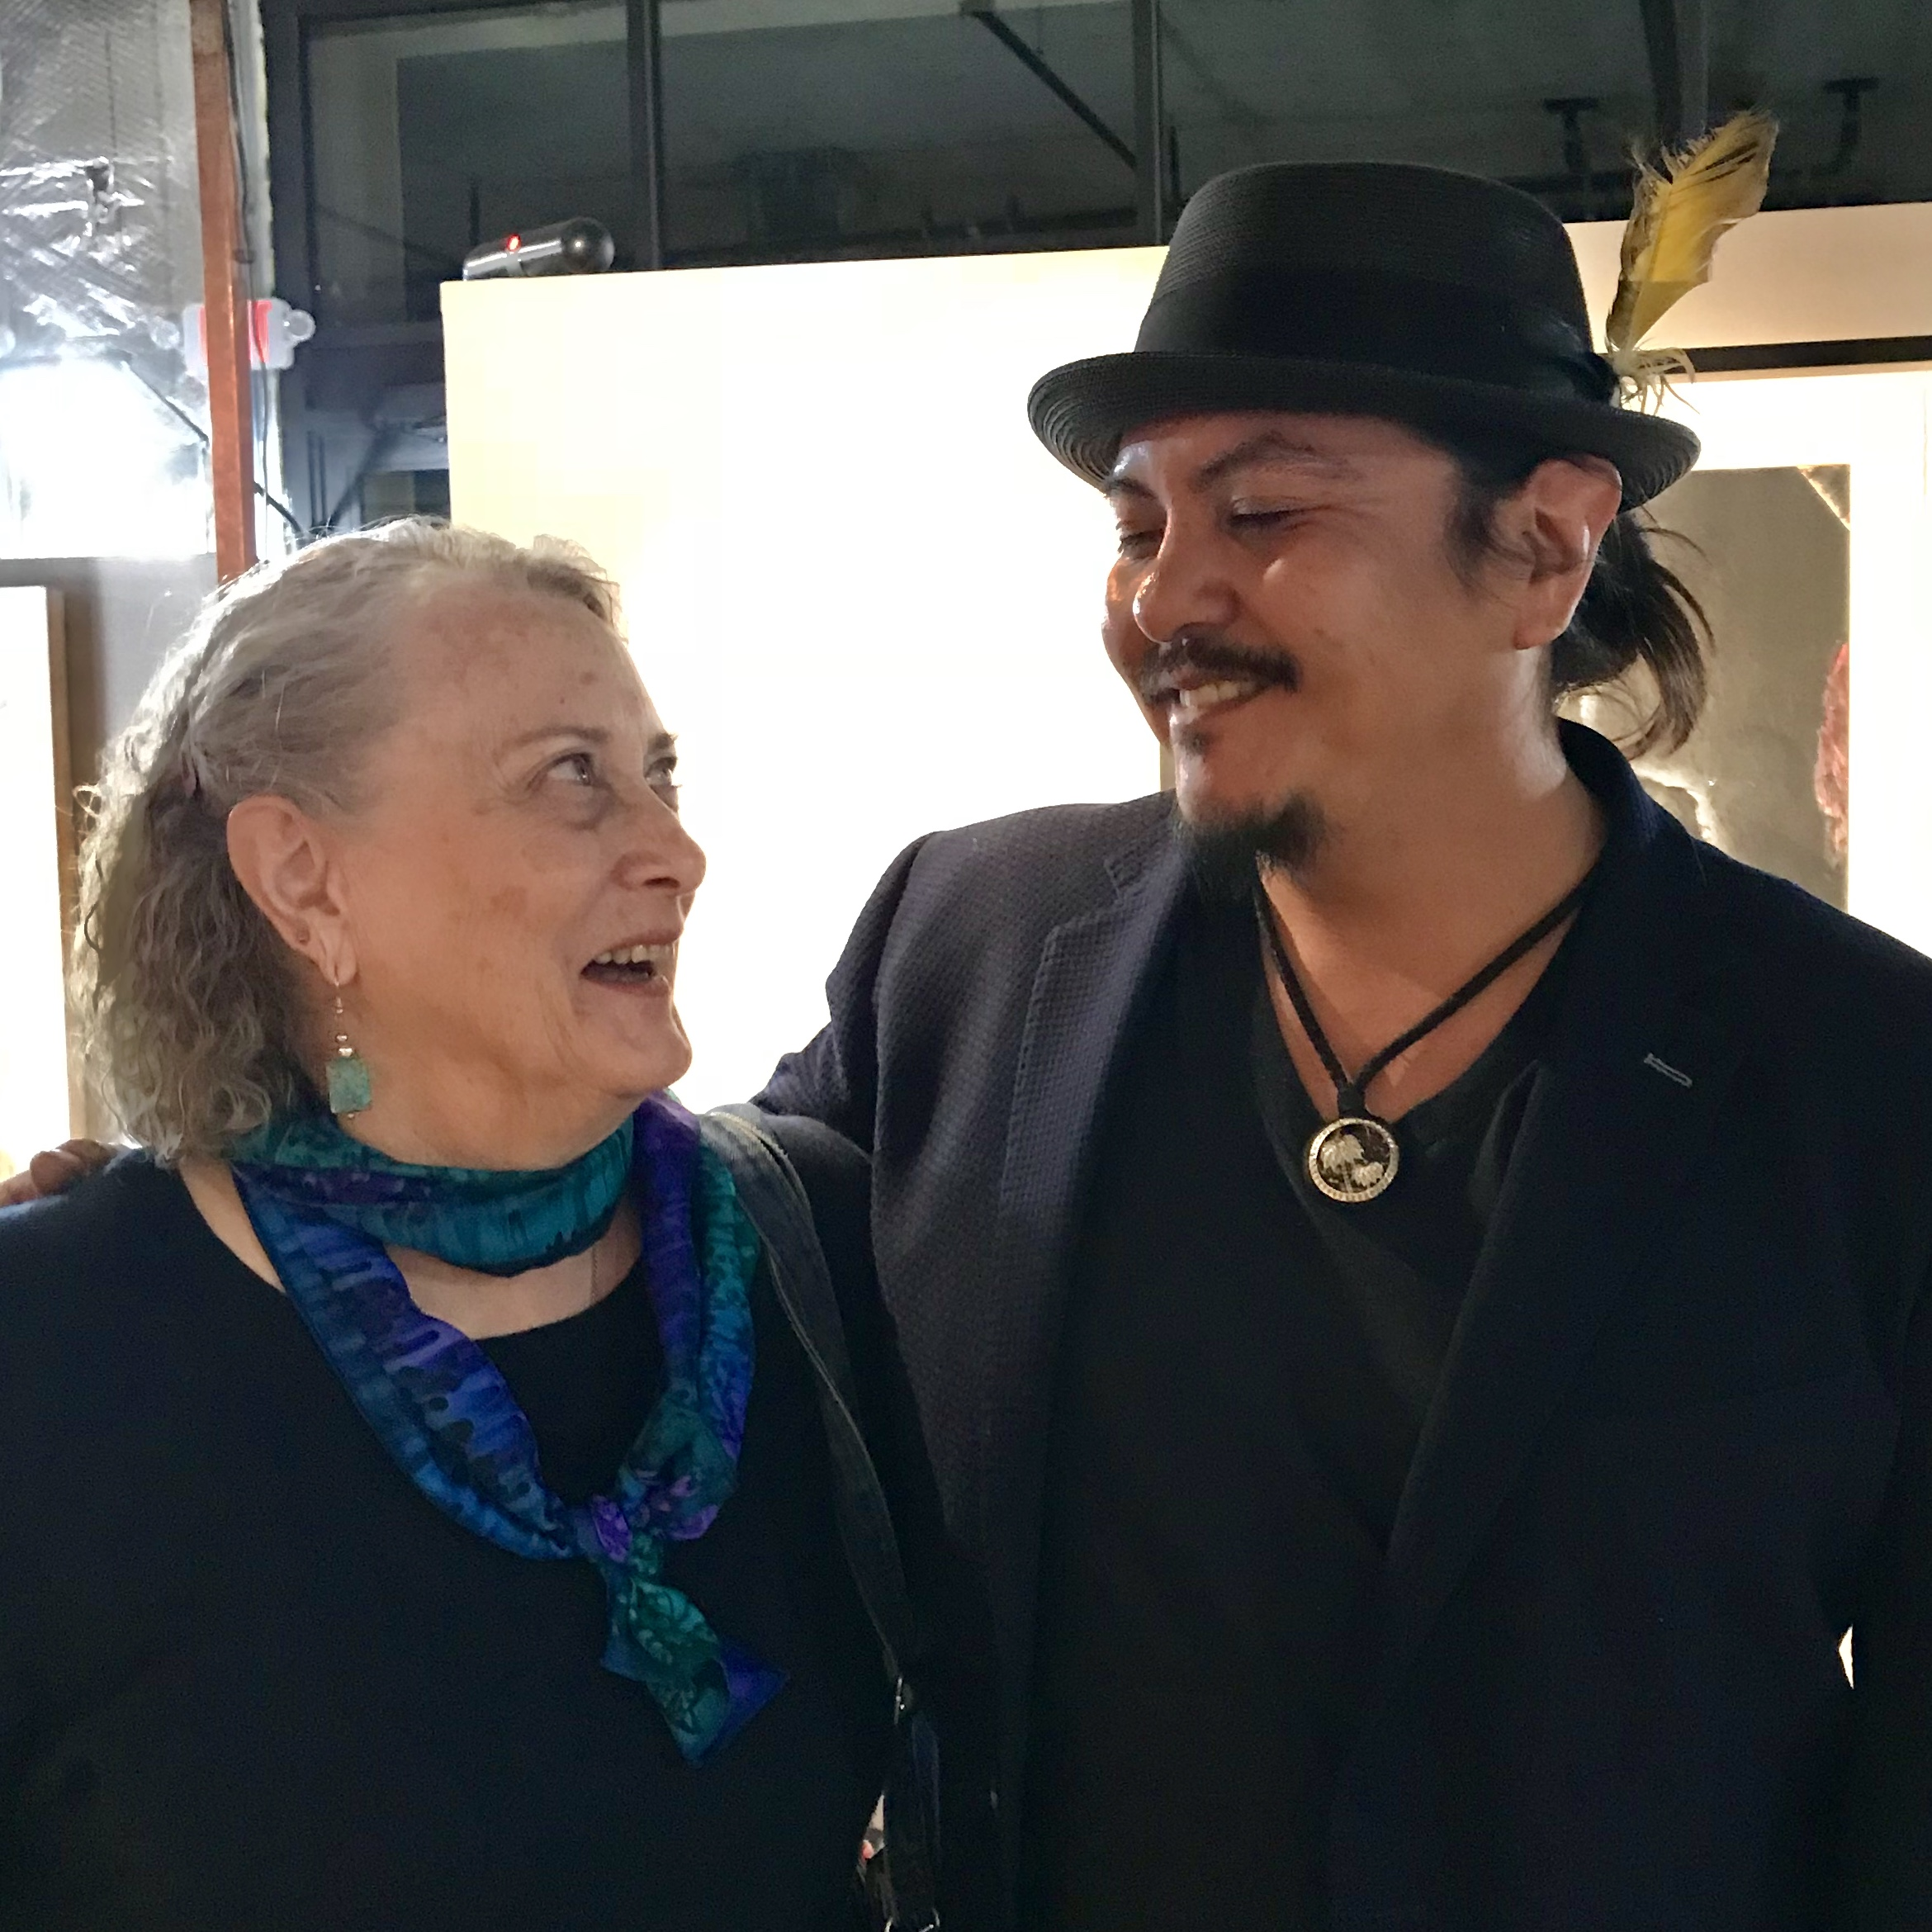 Ira Lujan  and his mom Jan look at each other lovingly.